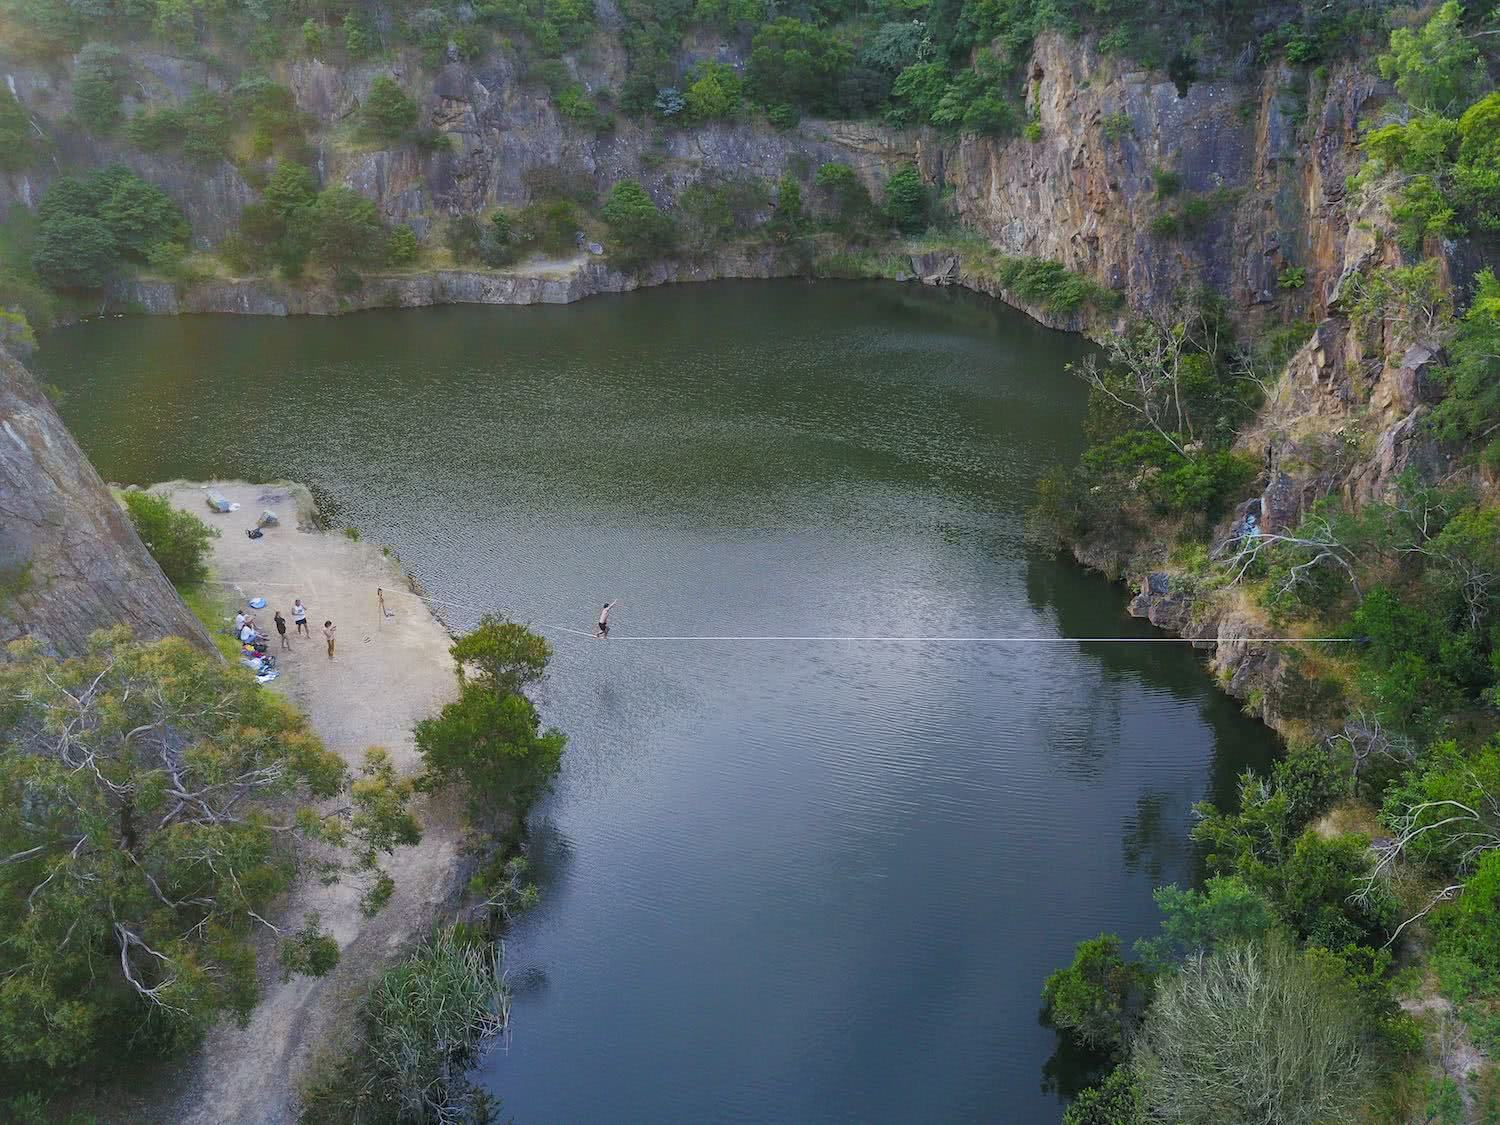 drone at secret quarry, highline, osprey adventure grant, highlining